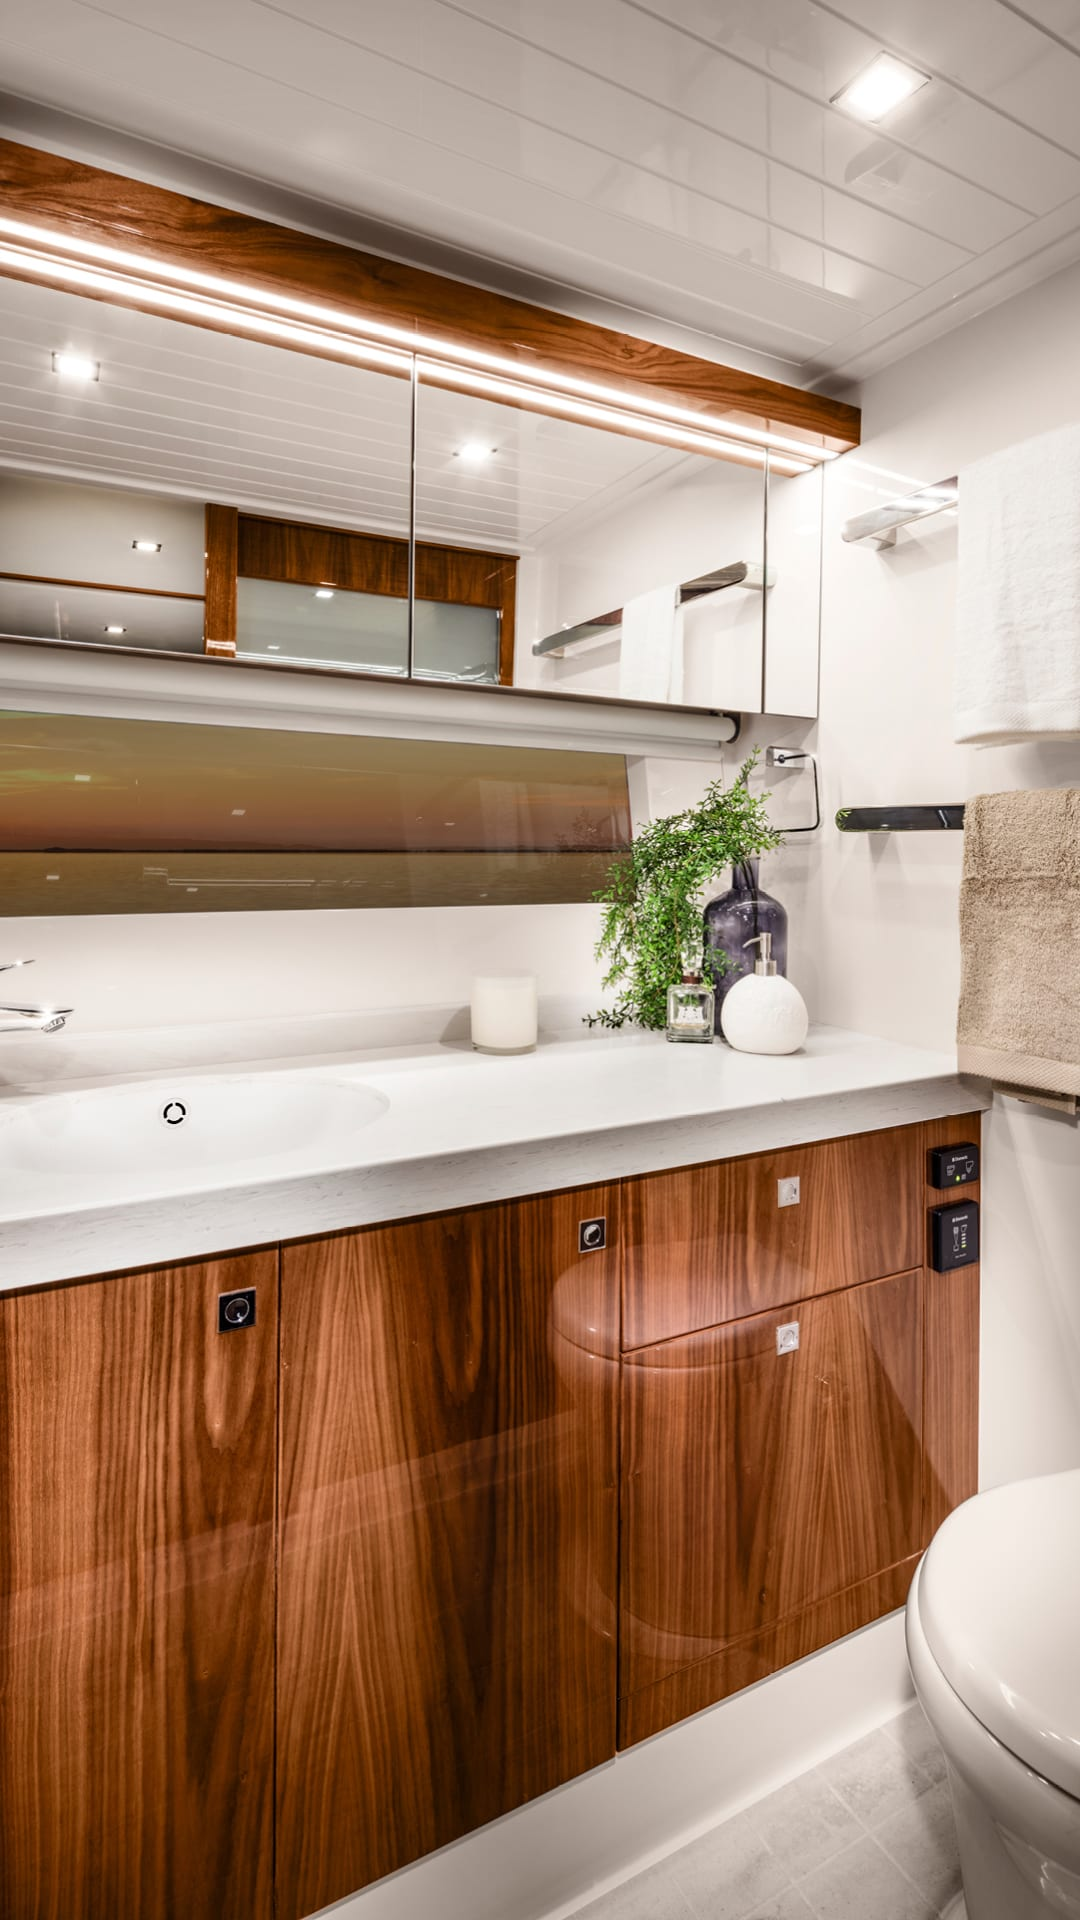 Riviera 68 Sports Motor Yacht Classic Master Ensuite 01 – Gloss Walnut Timber Finish